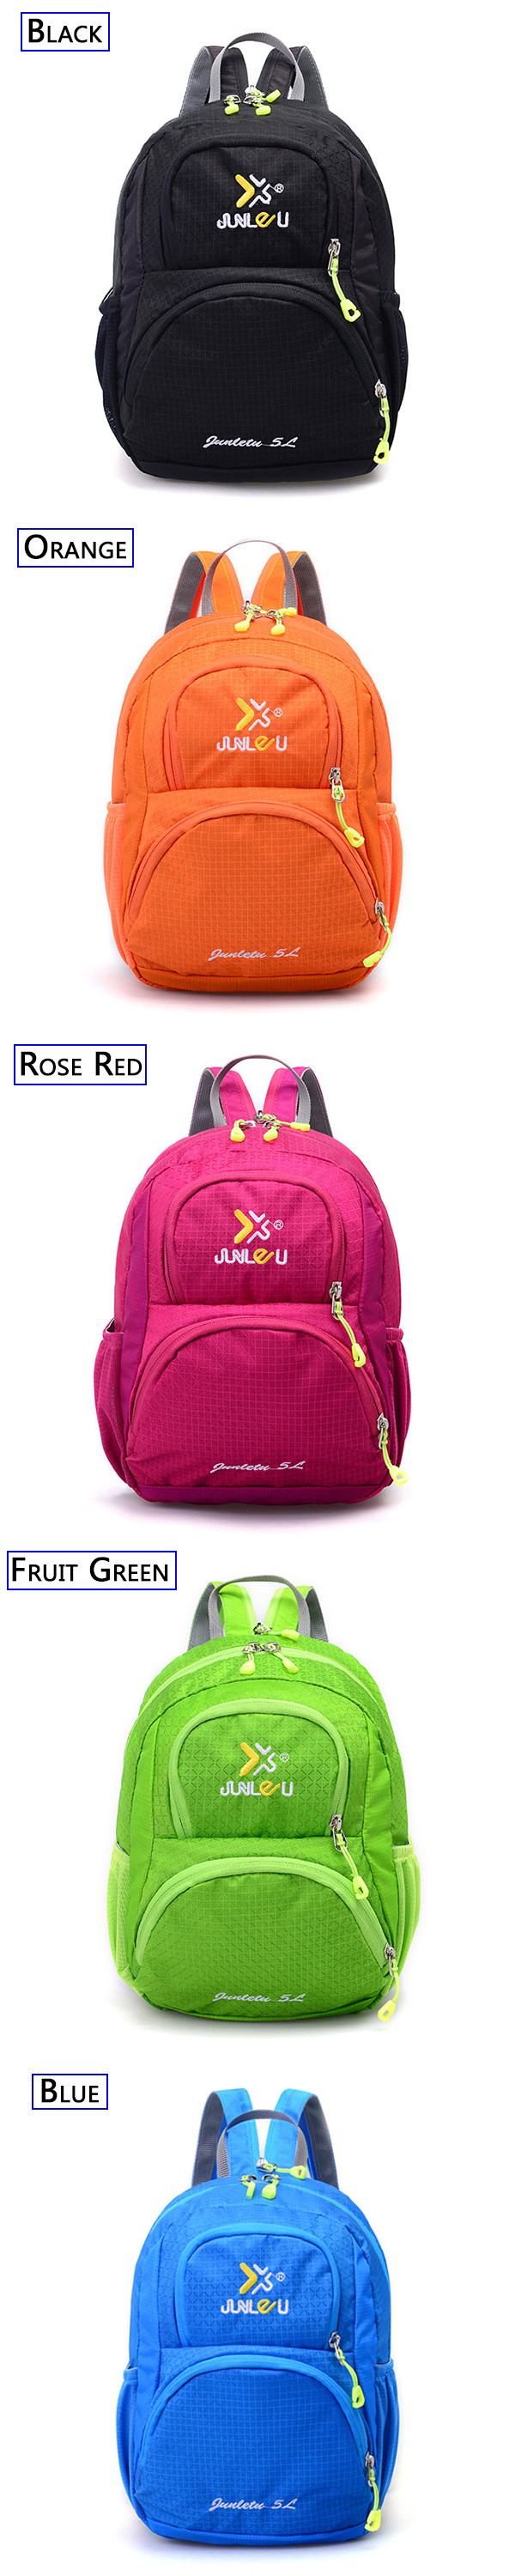 Nylon Waterproof Light Weight Backpack Crossboby Bag Casual Outdooors Sports Chest Bag Shoulder Bag